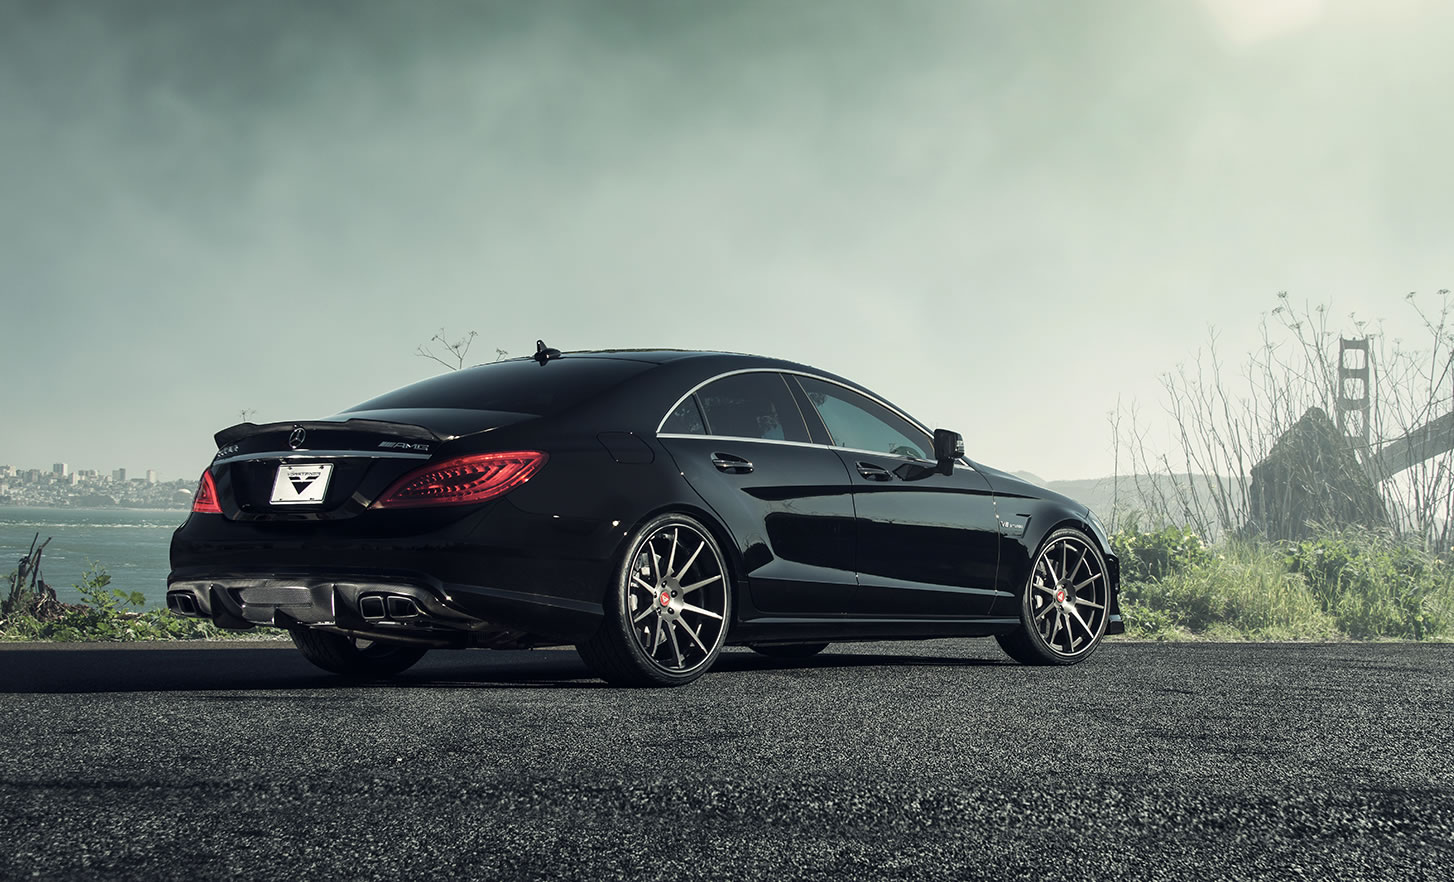 2014 mercedes benz cls63 amg by vorsteiner photos specs and review rs. Black Bedroom Furniture Sets. Home Design Ideas